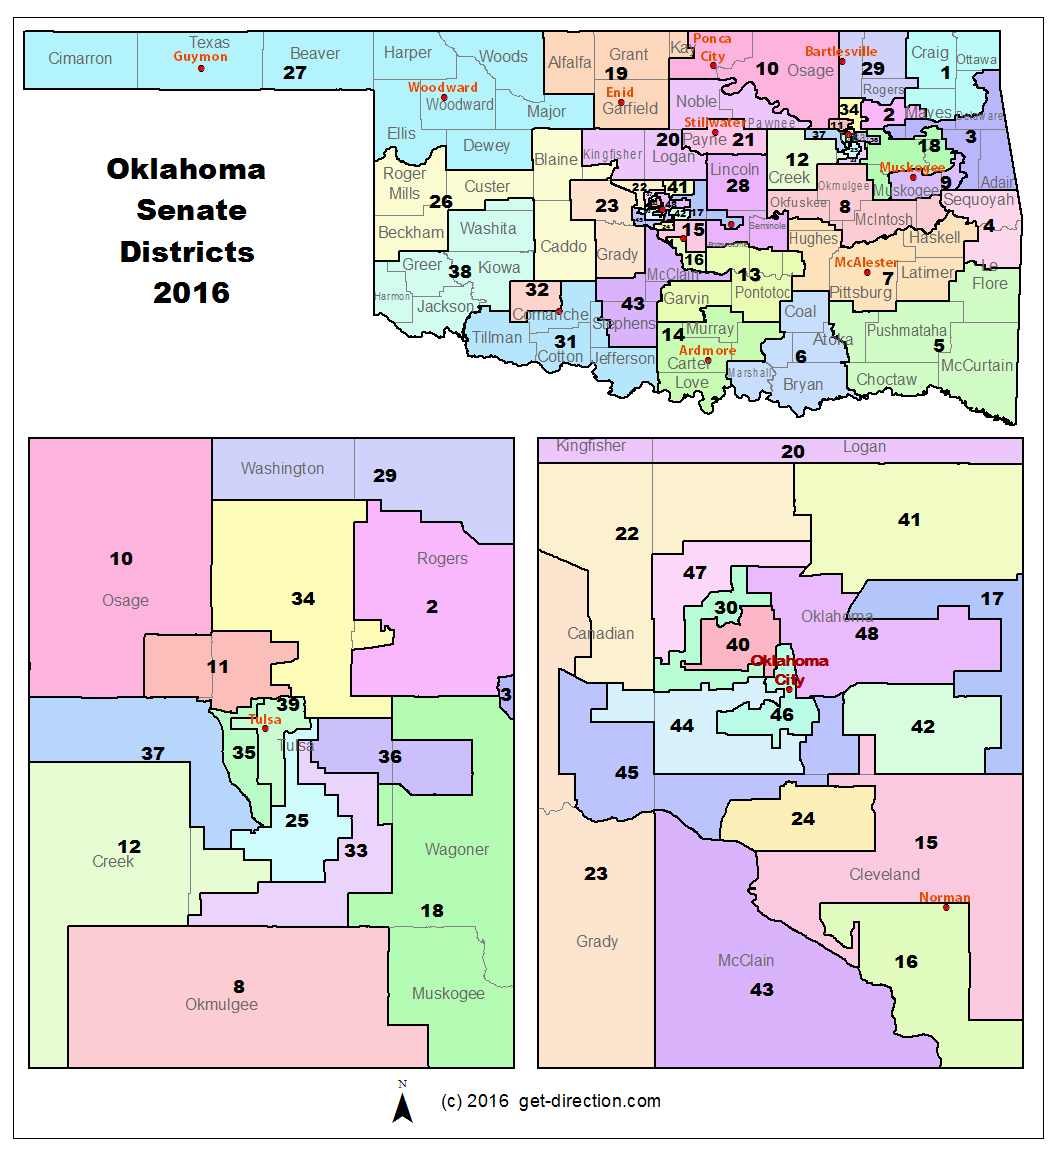 oklahoma-senate-districts-2016.png